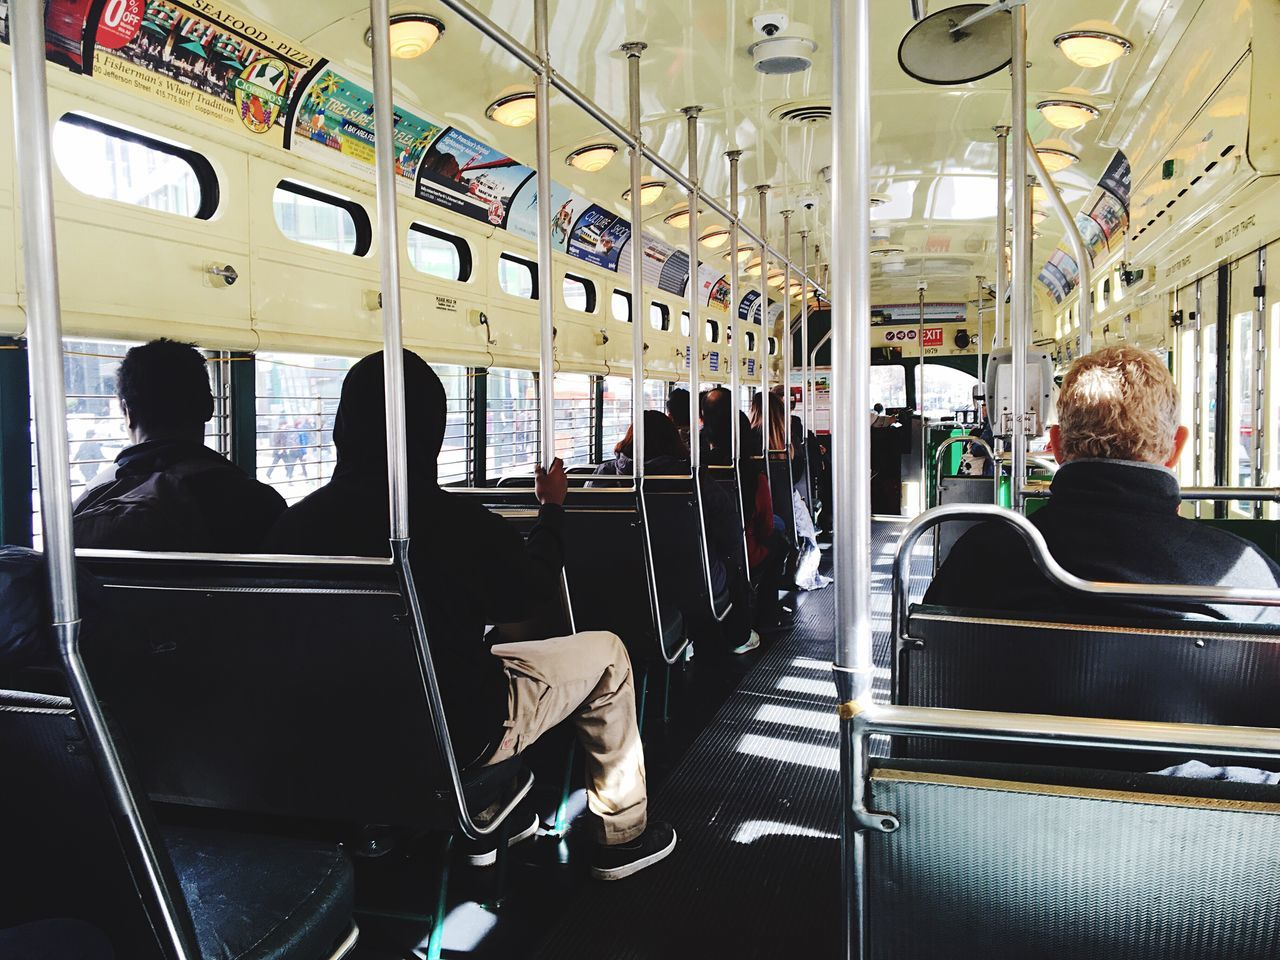 IPhoneography IPhone Photography Iphonephotography Tram Travel Transportation Mode Of Transport Public Transportation Vehicle Interior Subway Train Adults Only Indoors  Train - Vehicle Passenger Men Journey Vehicle Seat Women People Commuter Adult Large Group Of People Train Interior Only Men